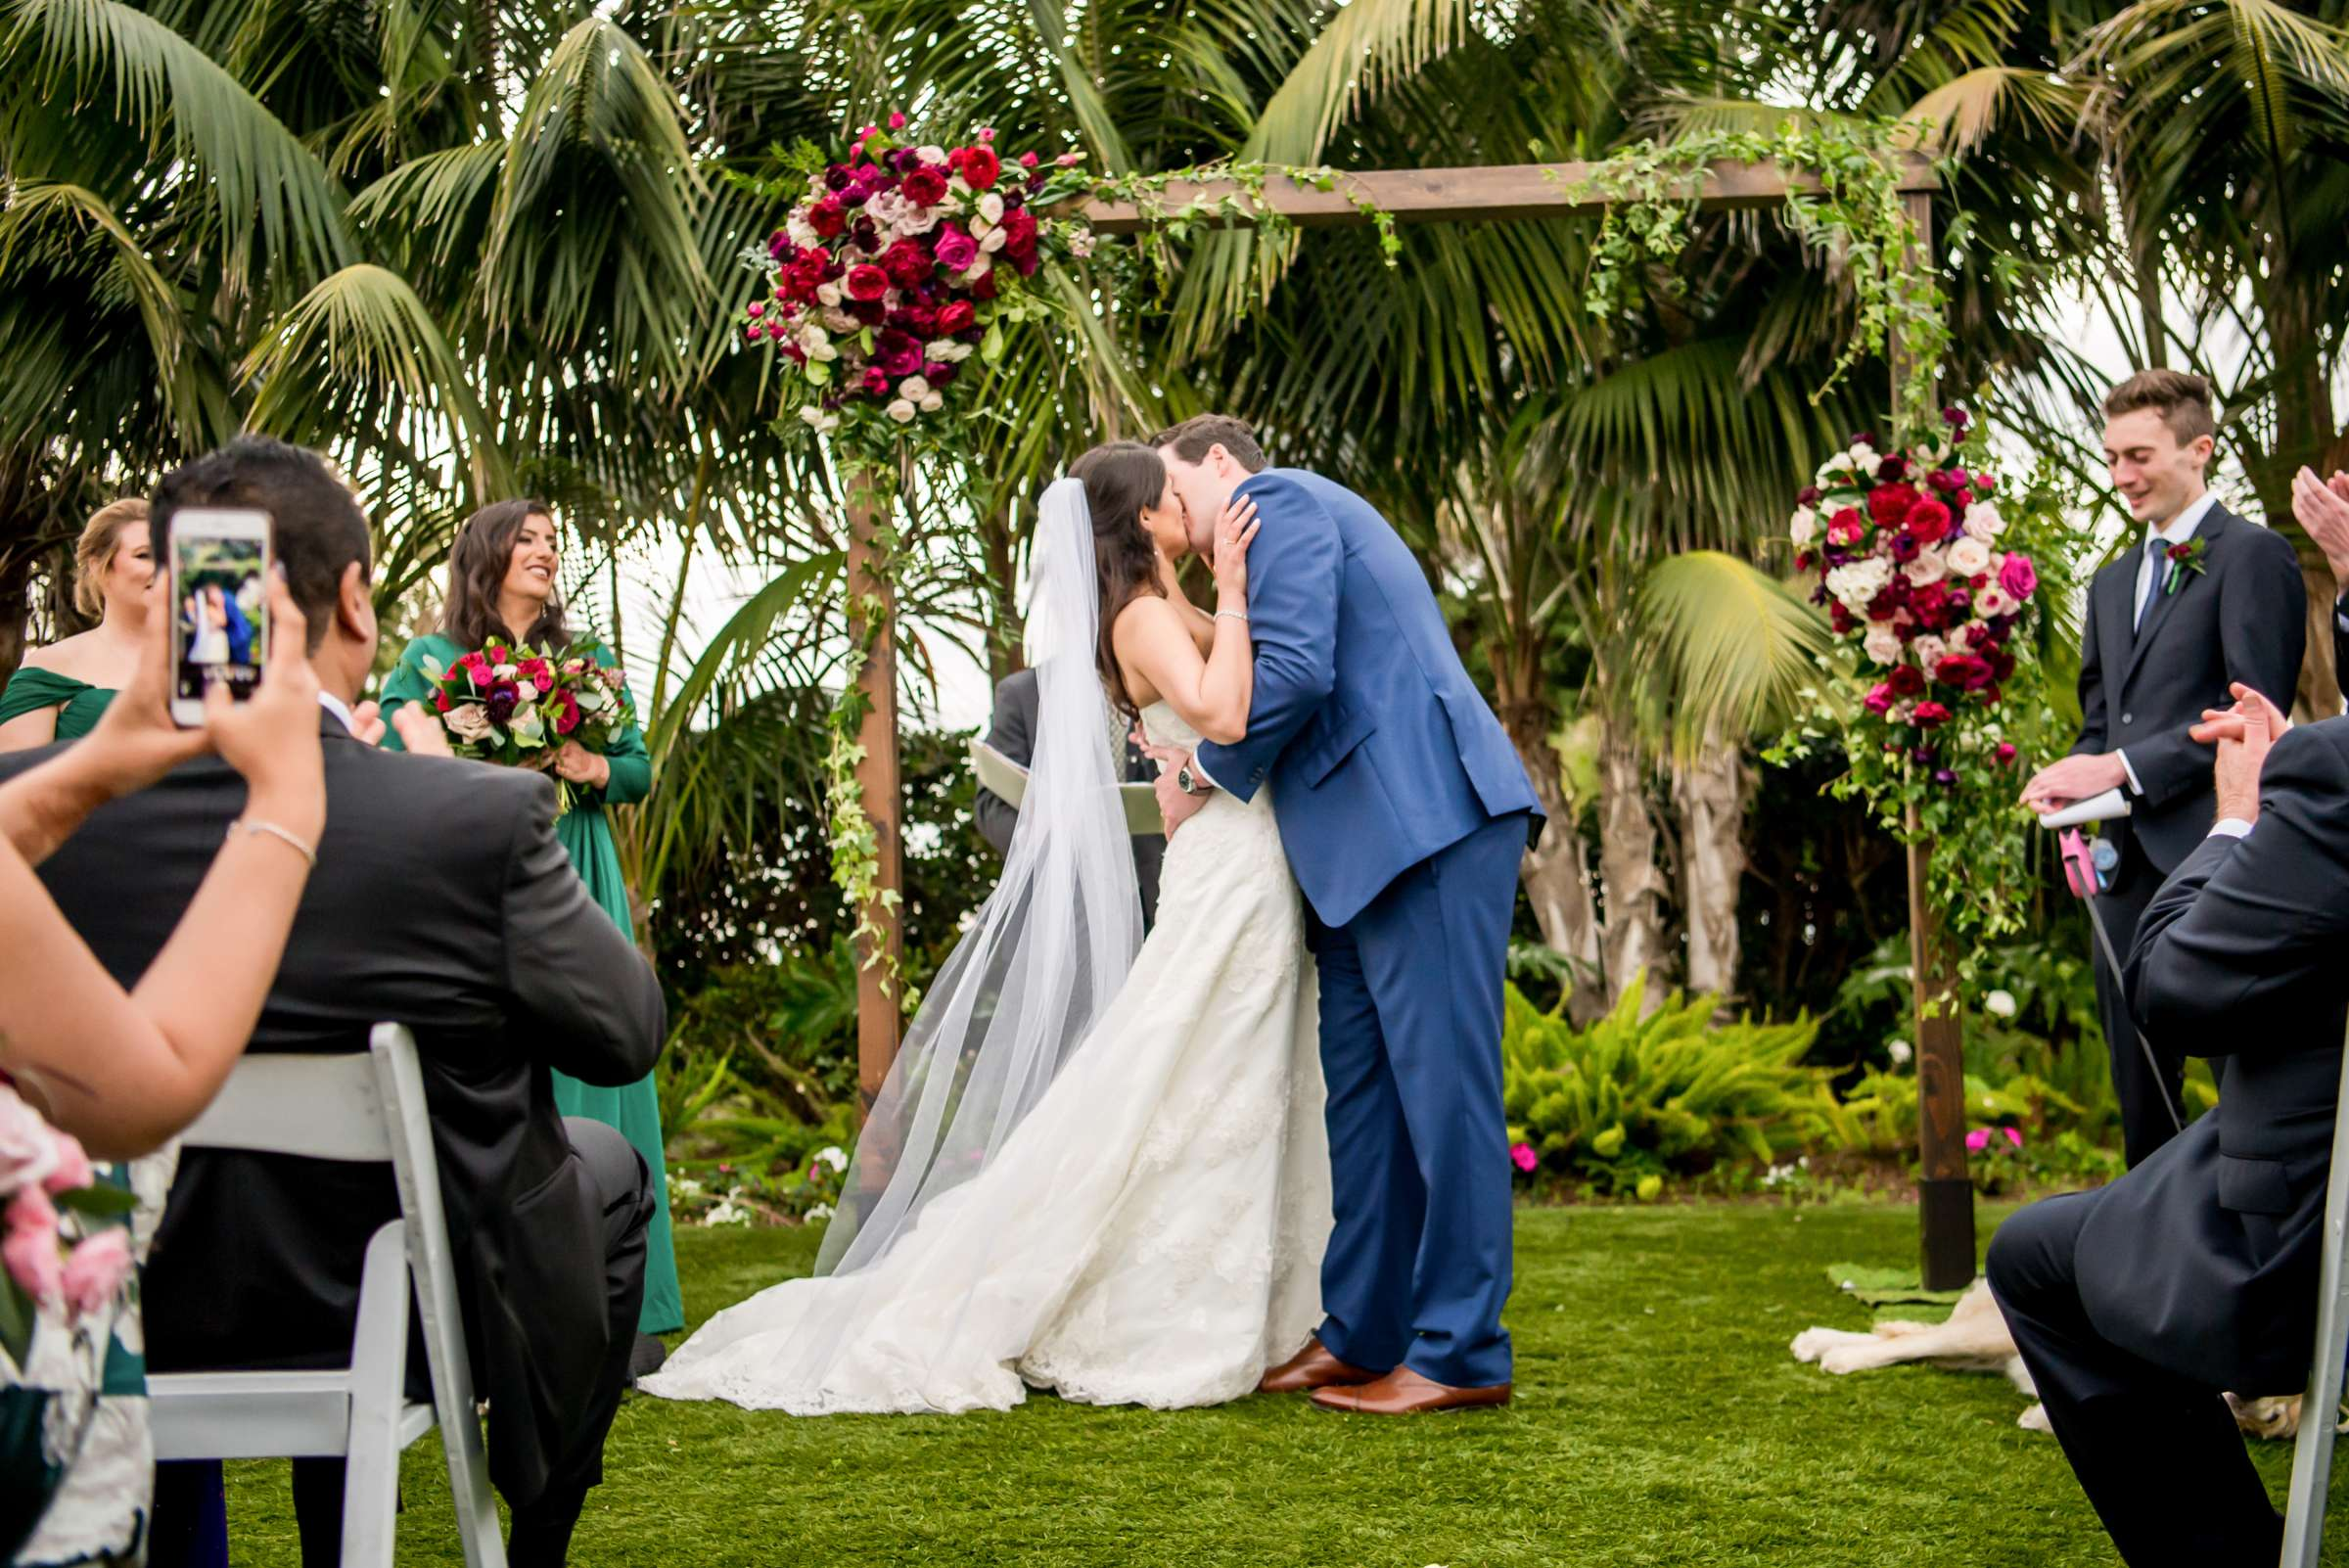 Cape Rey Carlsbad, A Hilton Resort Wedding, Jasmine and Kyle Wedding Photo #100 by True Photography